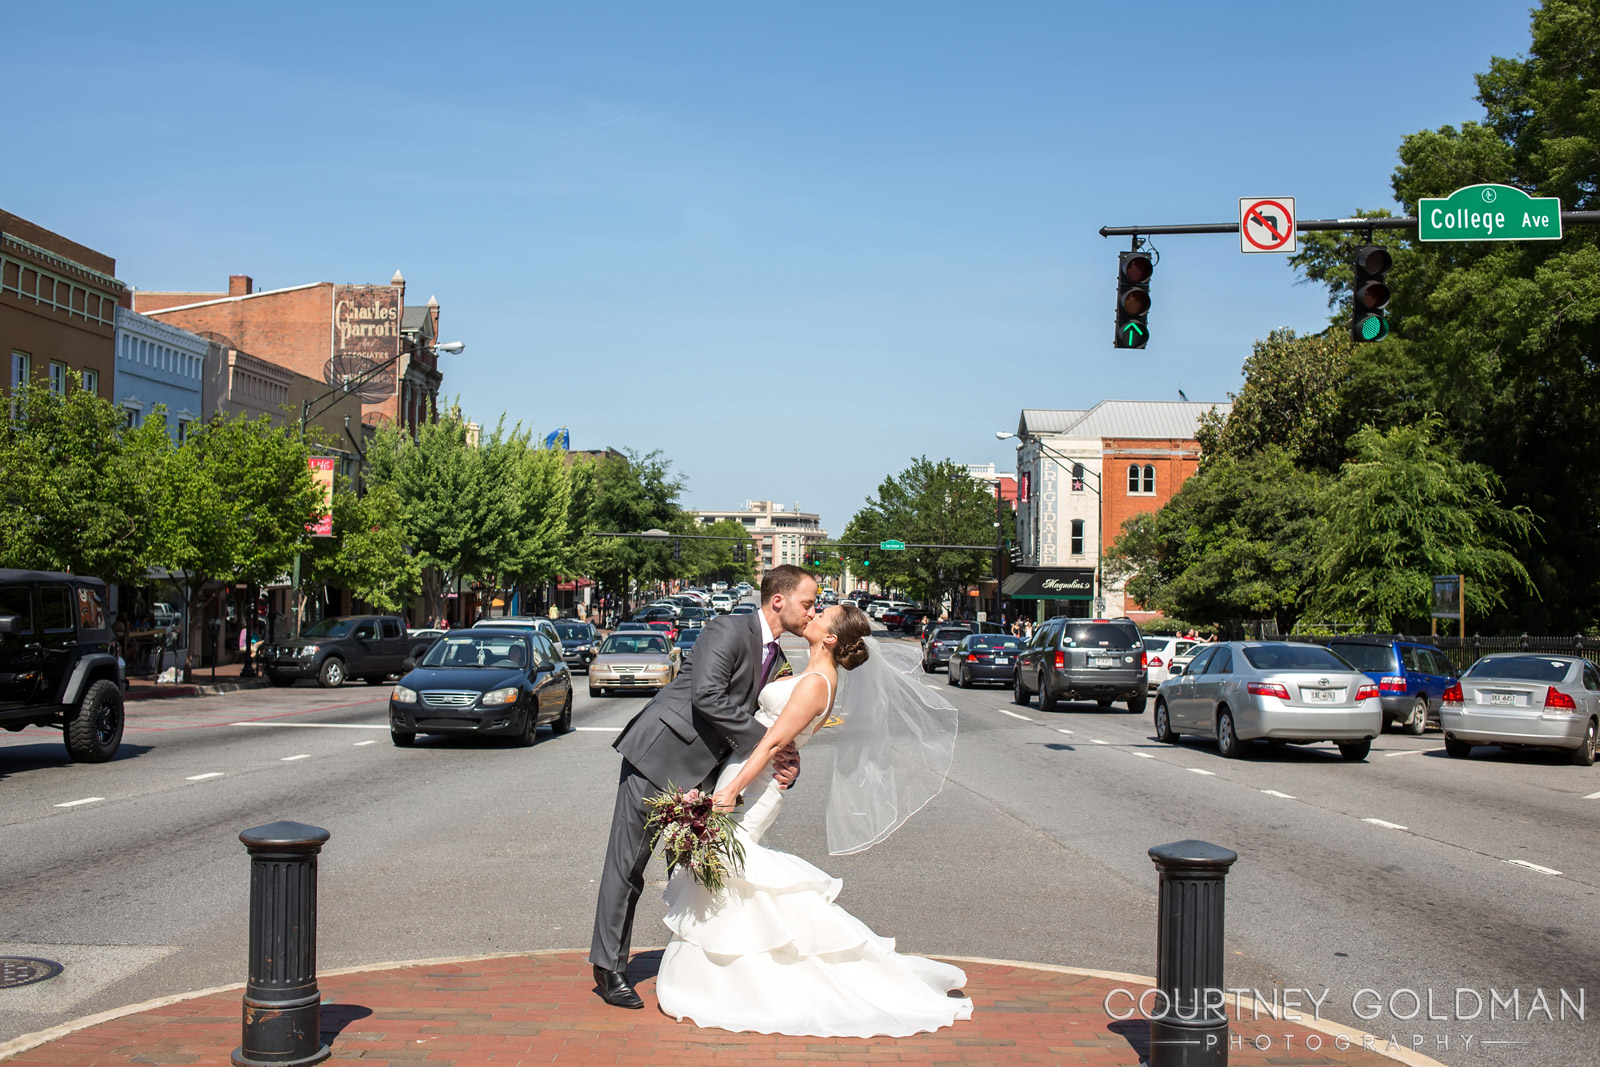 Atlanta-Wedding-Photography-by-Courtney-Goldman-20.jpg